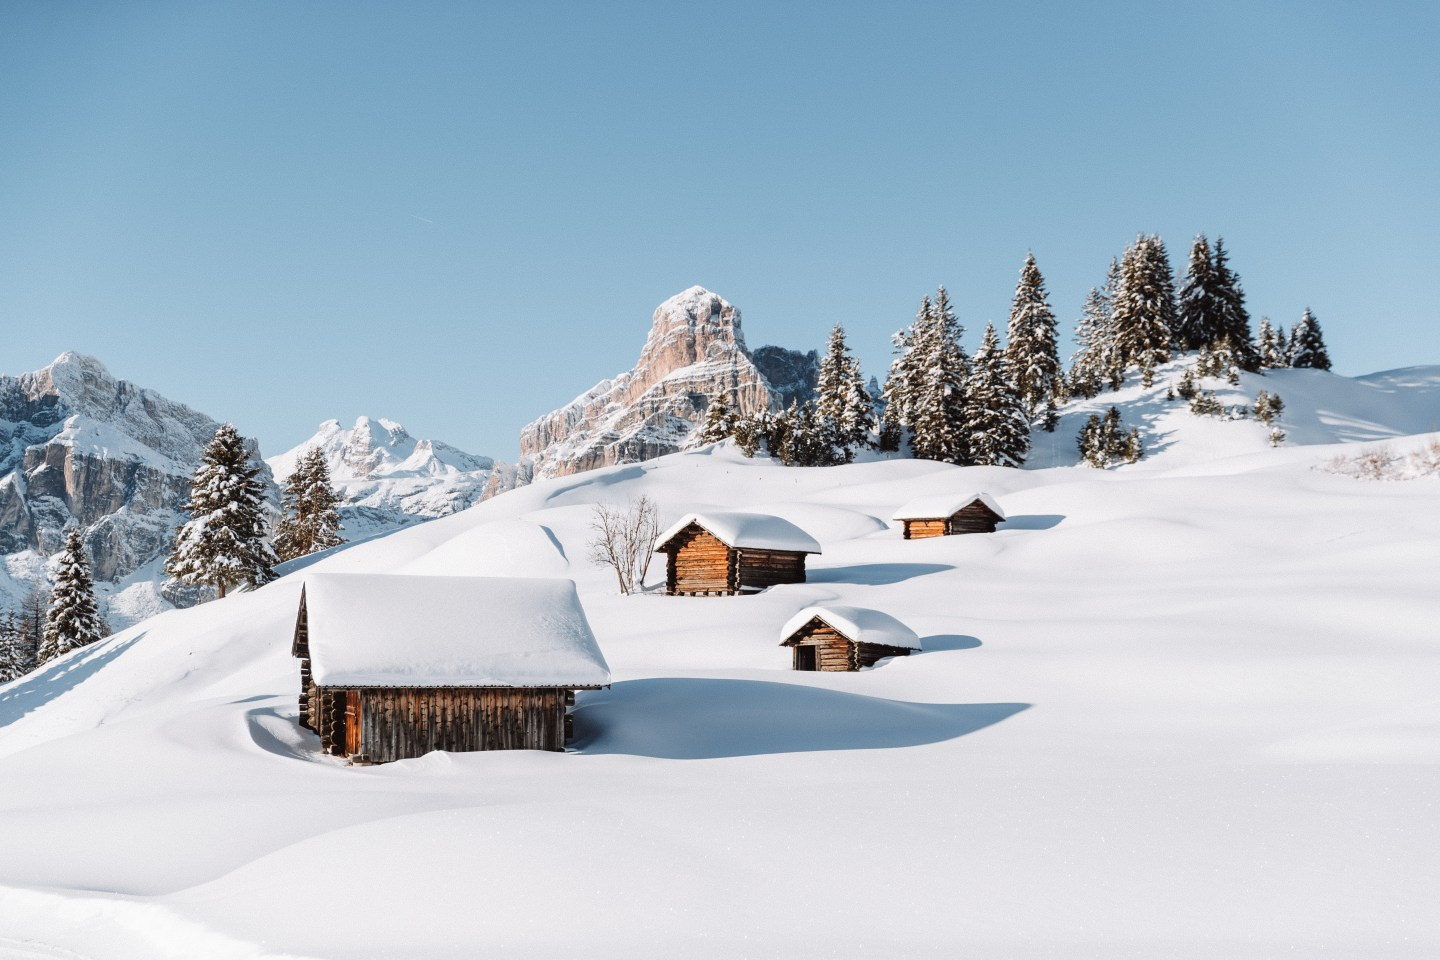 weekend-winter-getaway-dolomites-alliemtaylor-17